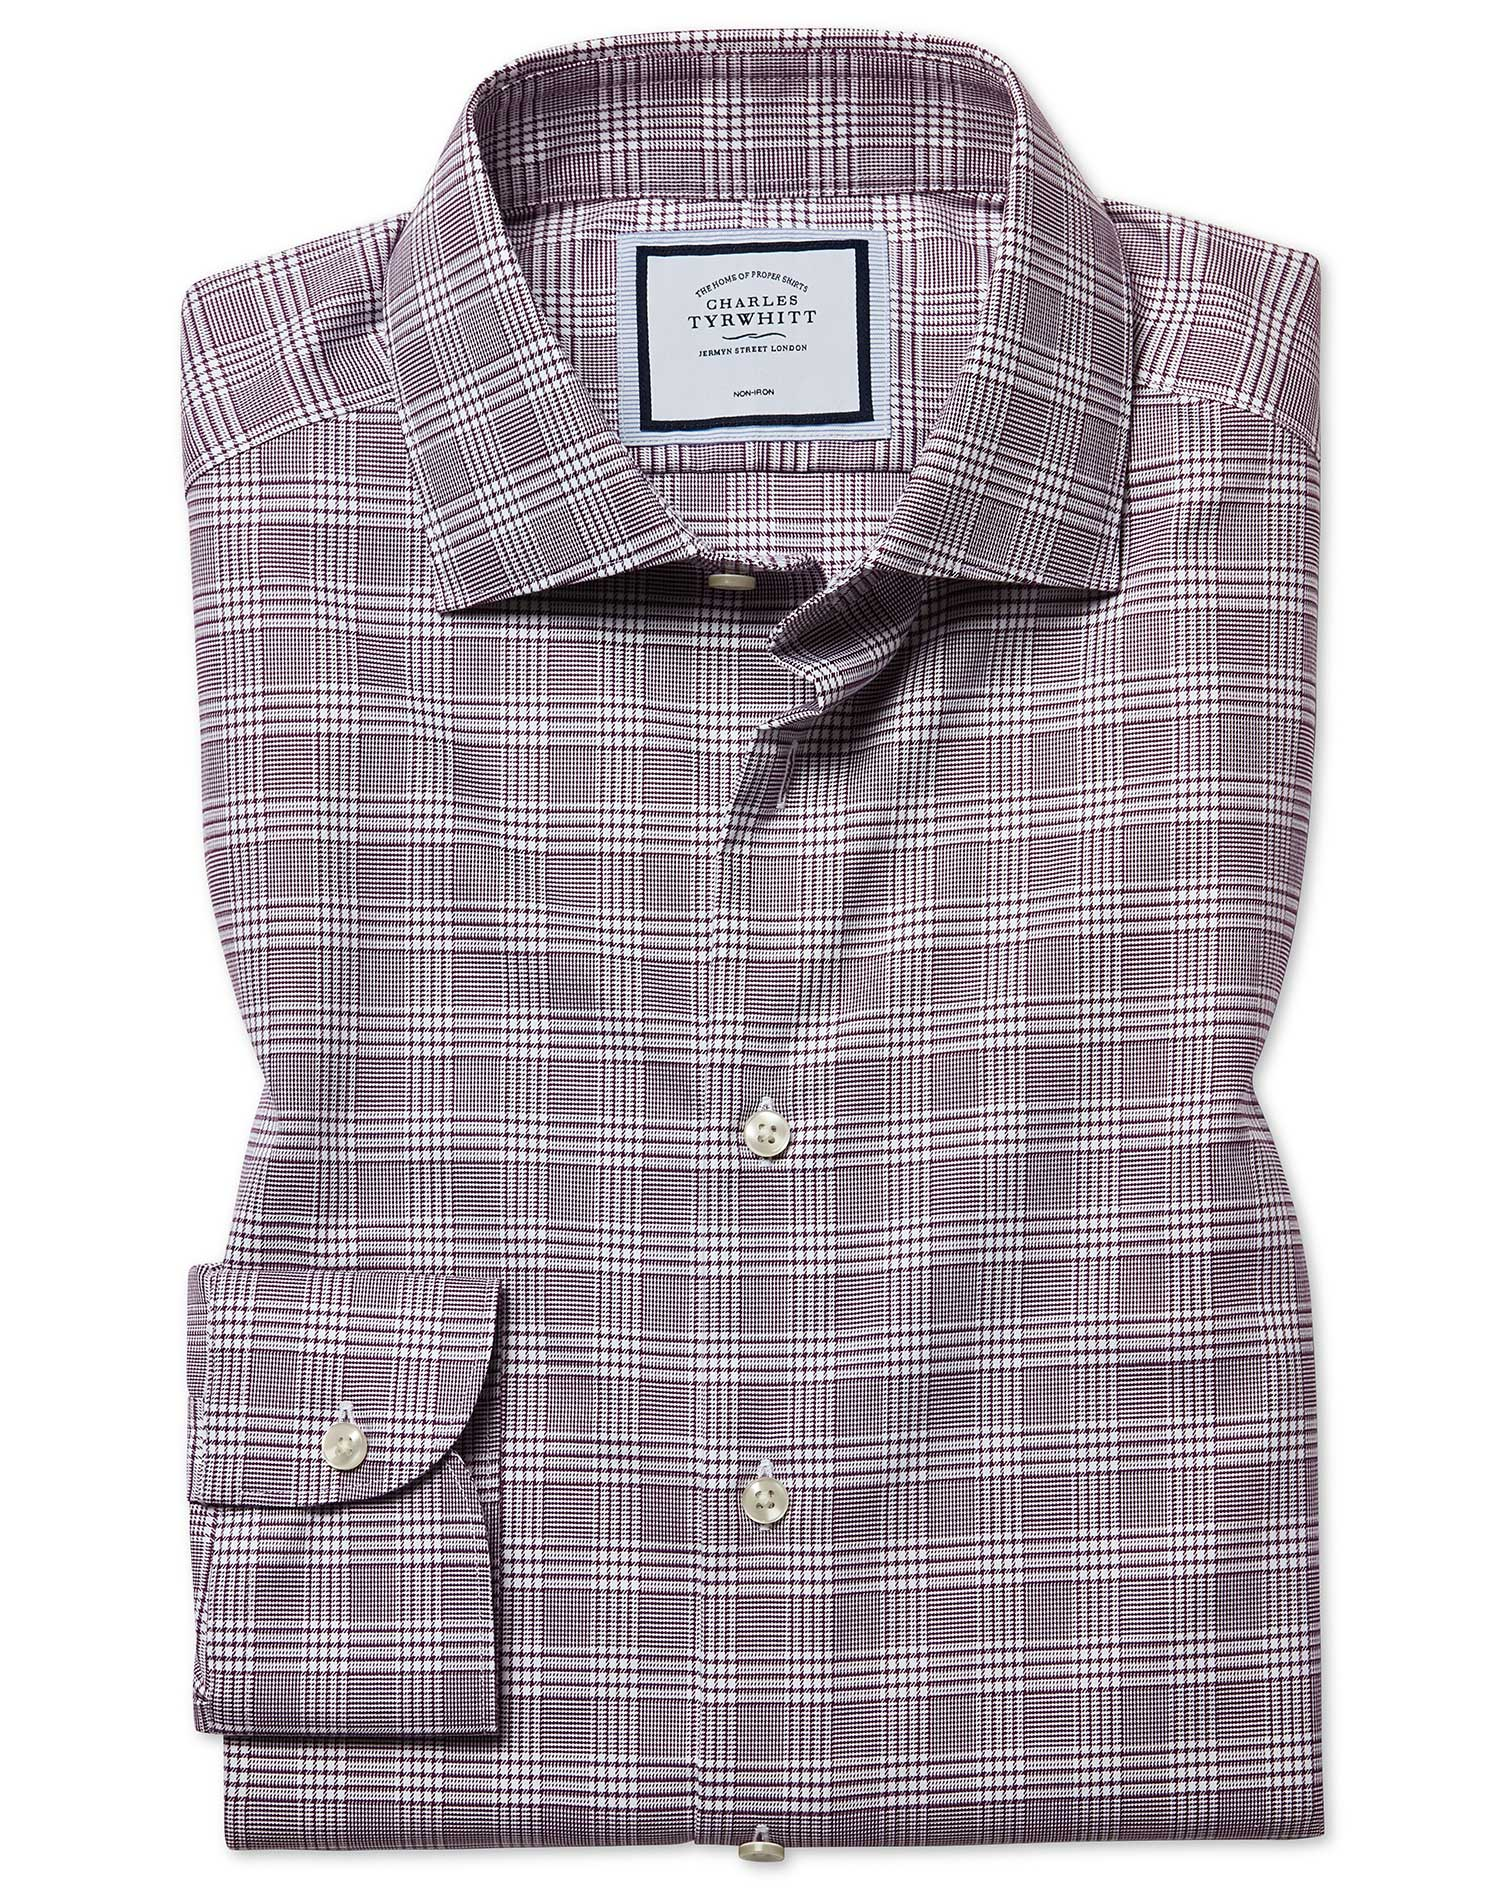 Classic Fit Non-Iron Natural Stretch Prince Of Wales Check Berry Cotton Formal Shirt Single Cuff Siz